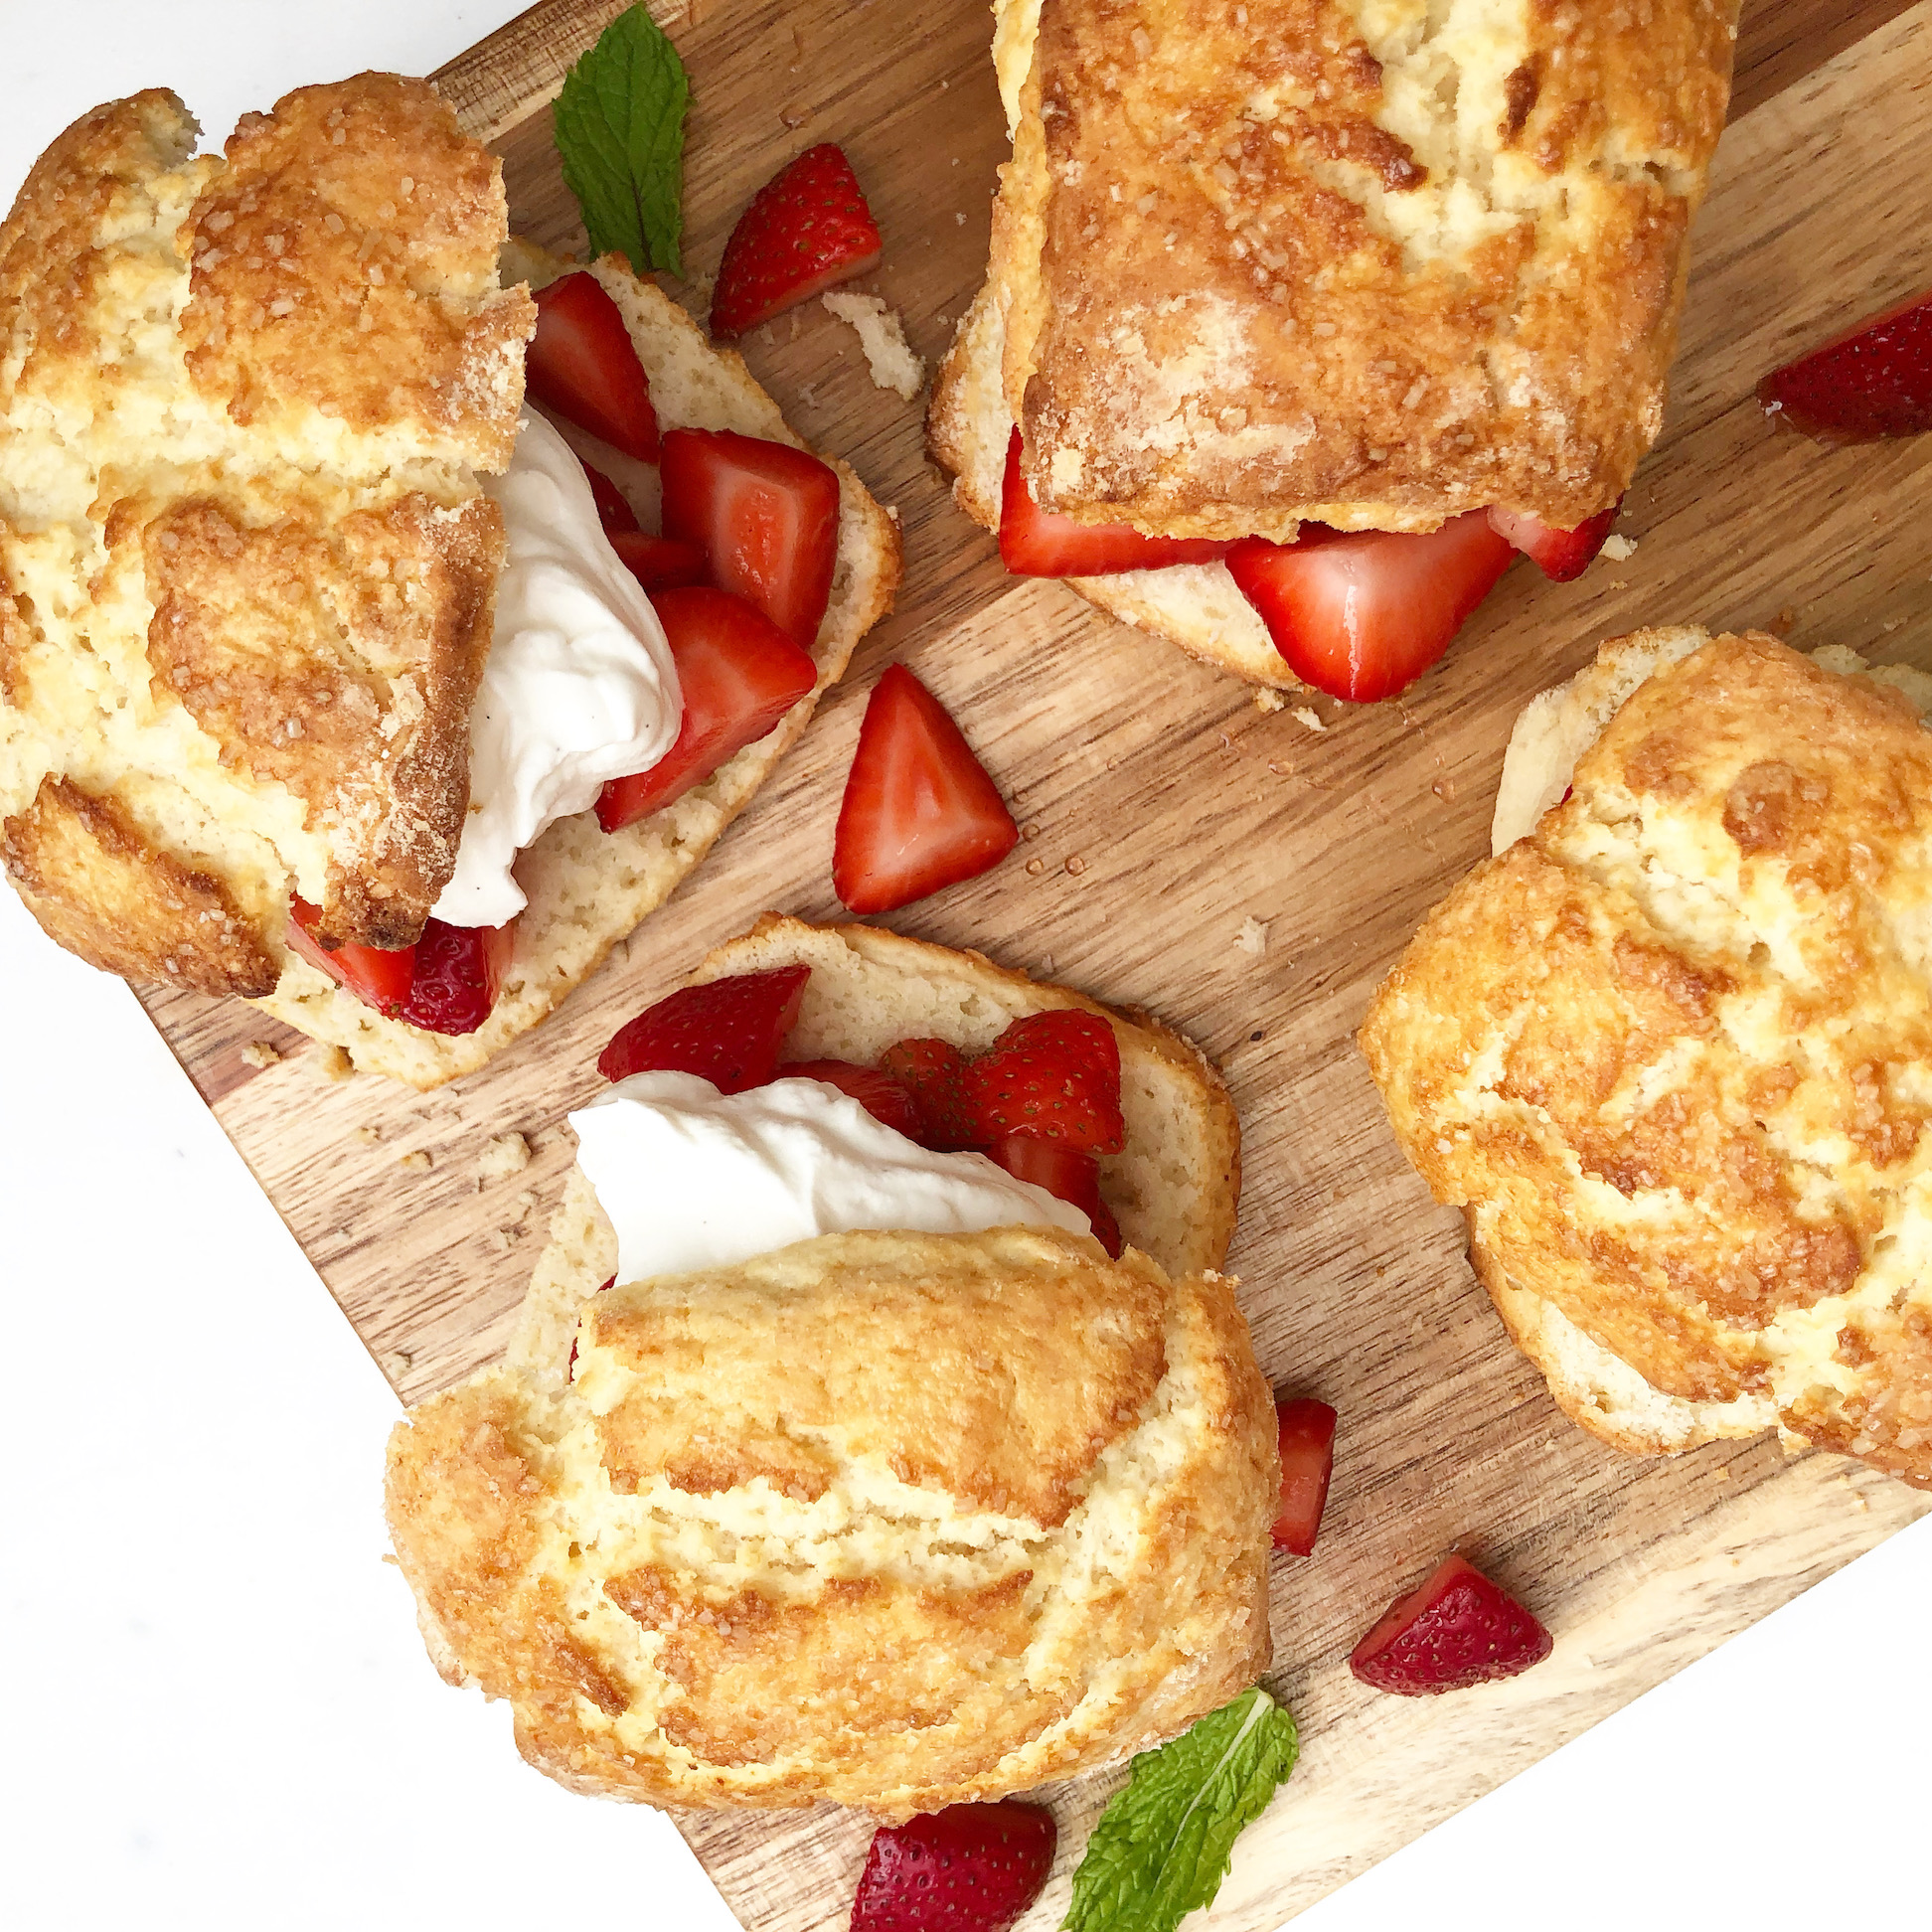 strawberry shortcakes on a wooden board